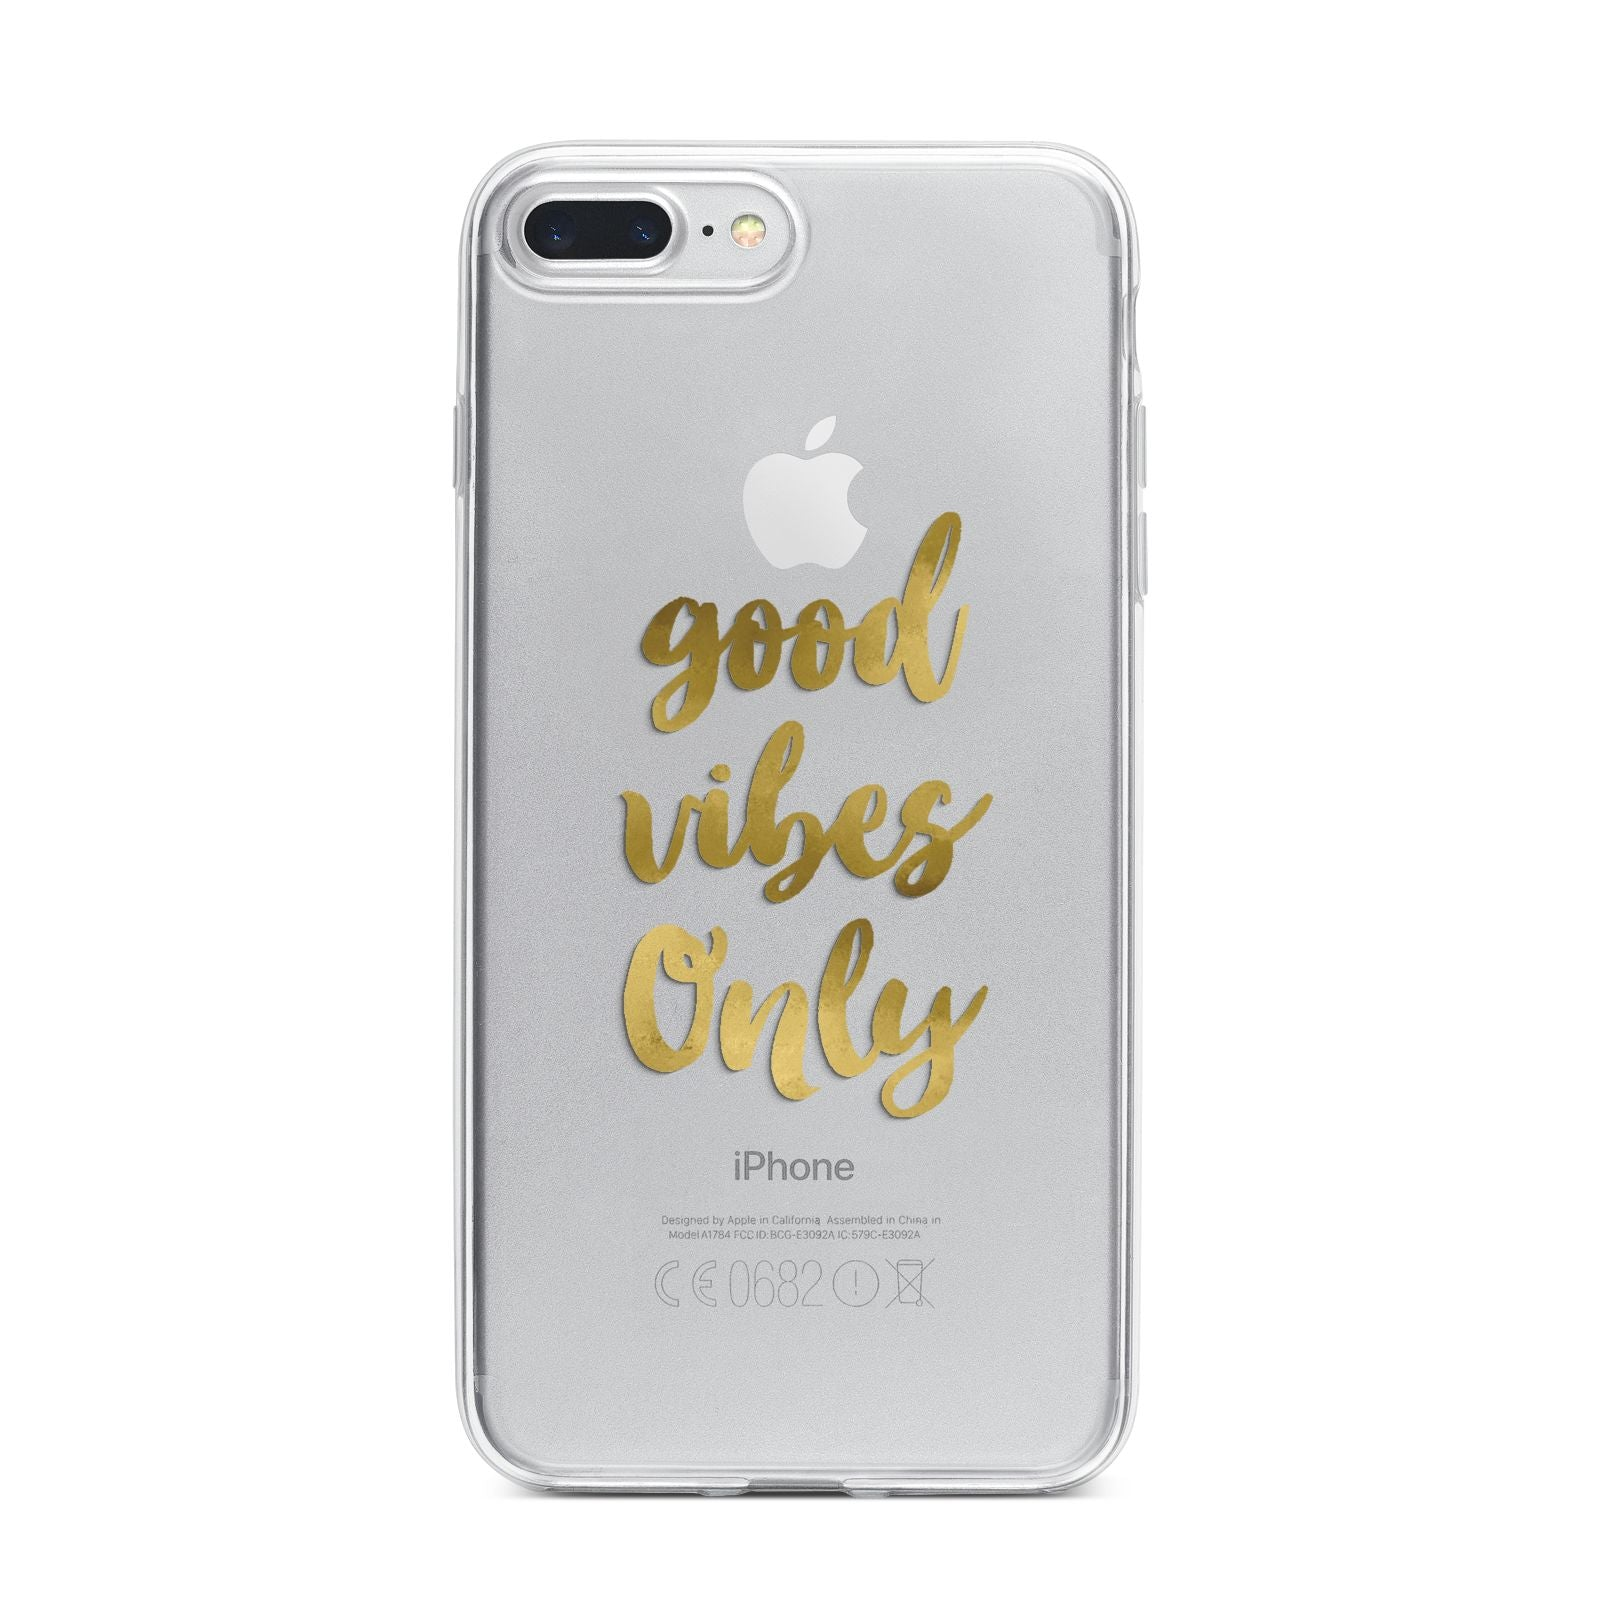 Good Vibes Only Gold Foiled iPhone 7 Plus Bumper Case on Silver iPhone